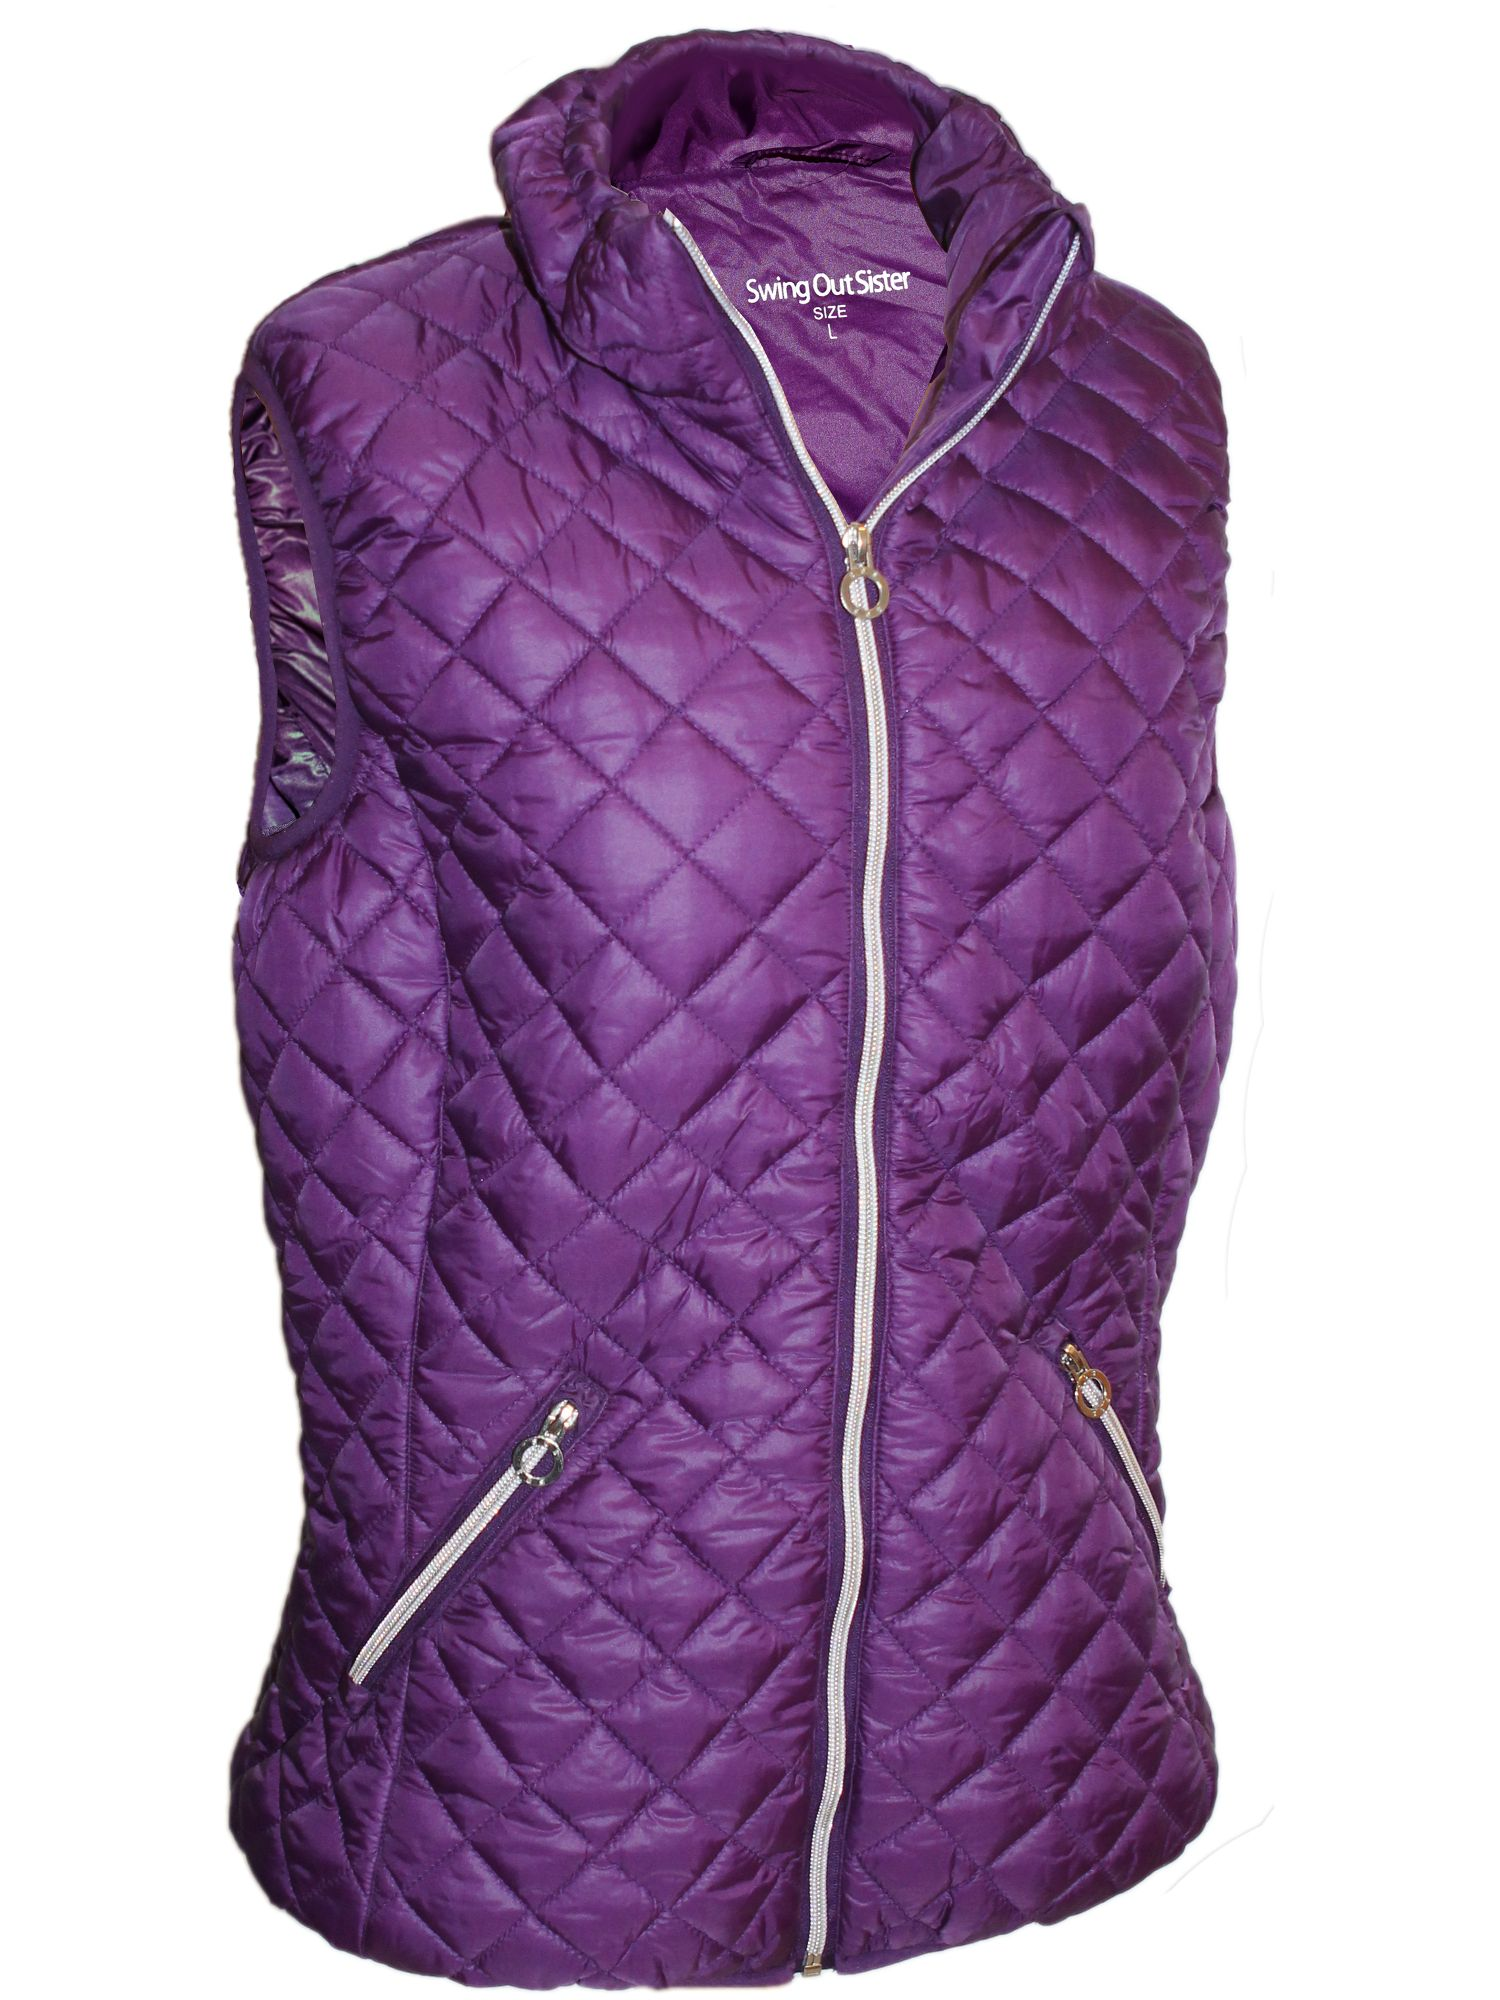 Swing Out Sister Swing Out Sister Harley Gilet, Purple